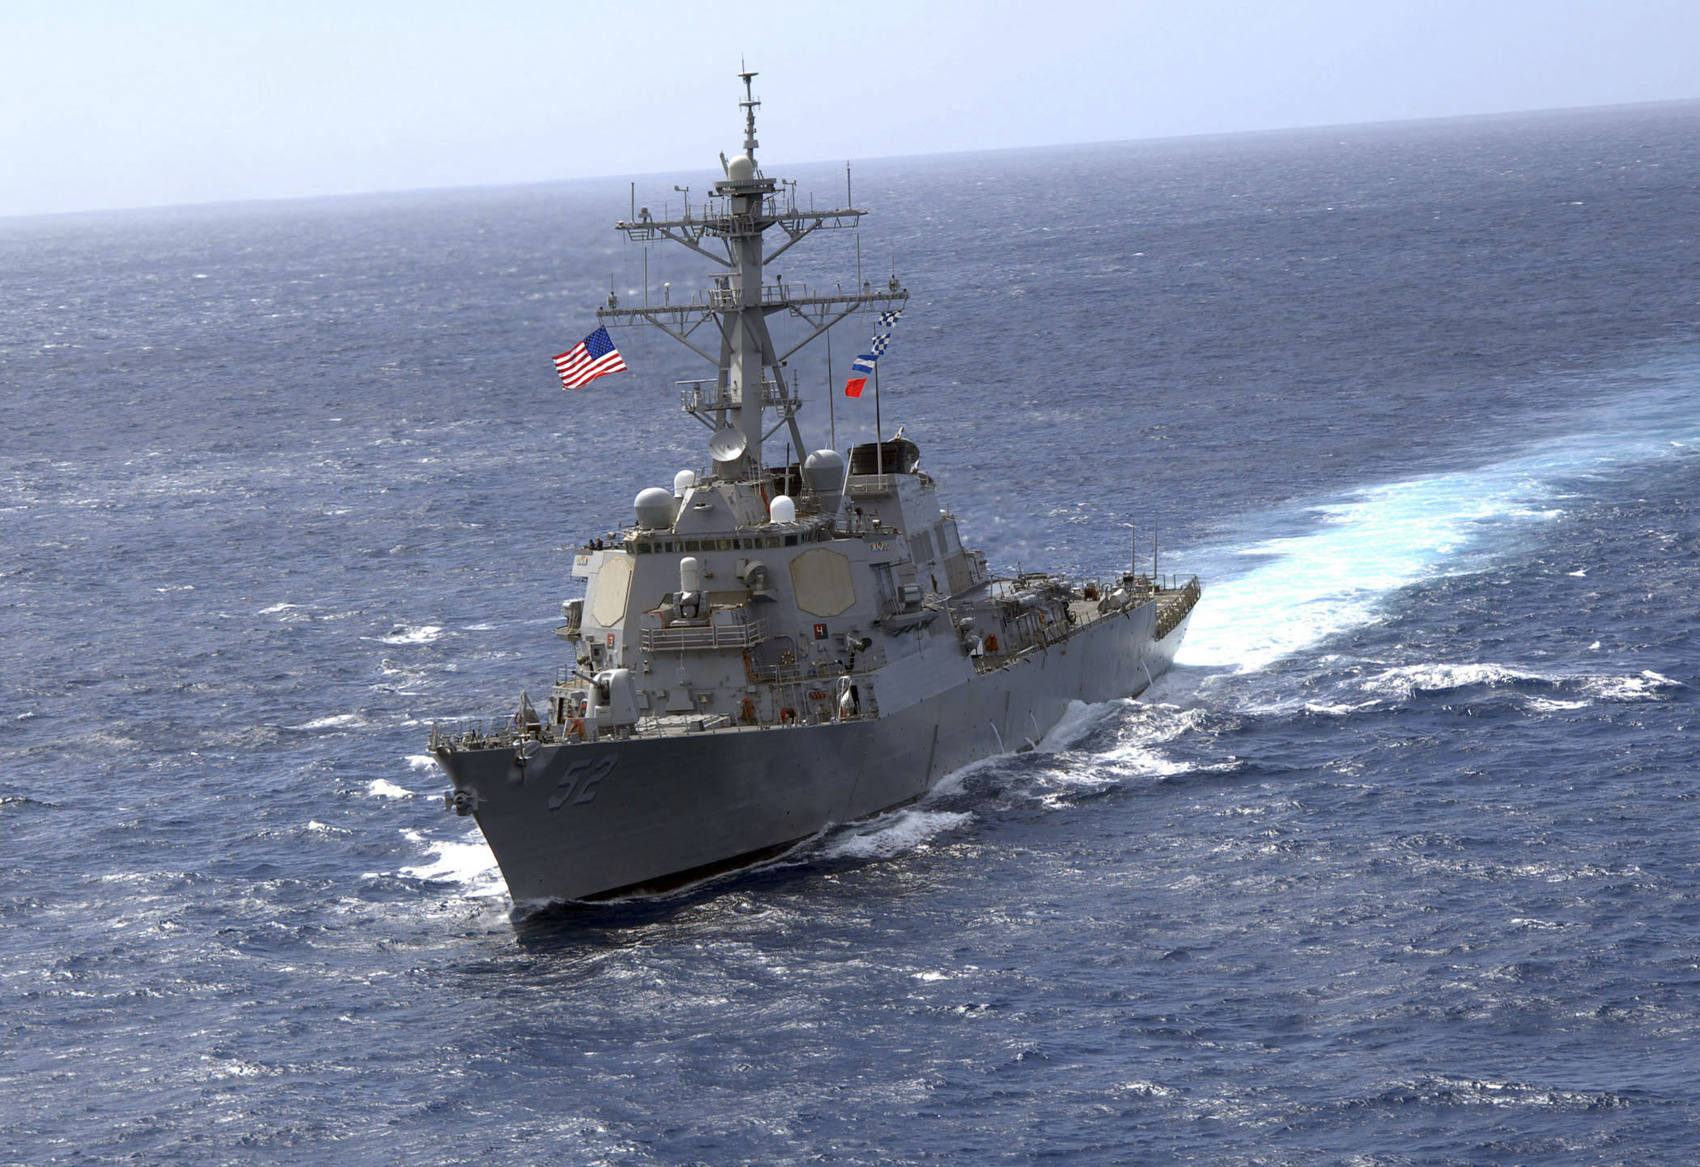 China Tracked a U.S. Navy Destroyer as it Transited the Taiwan Strait